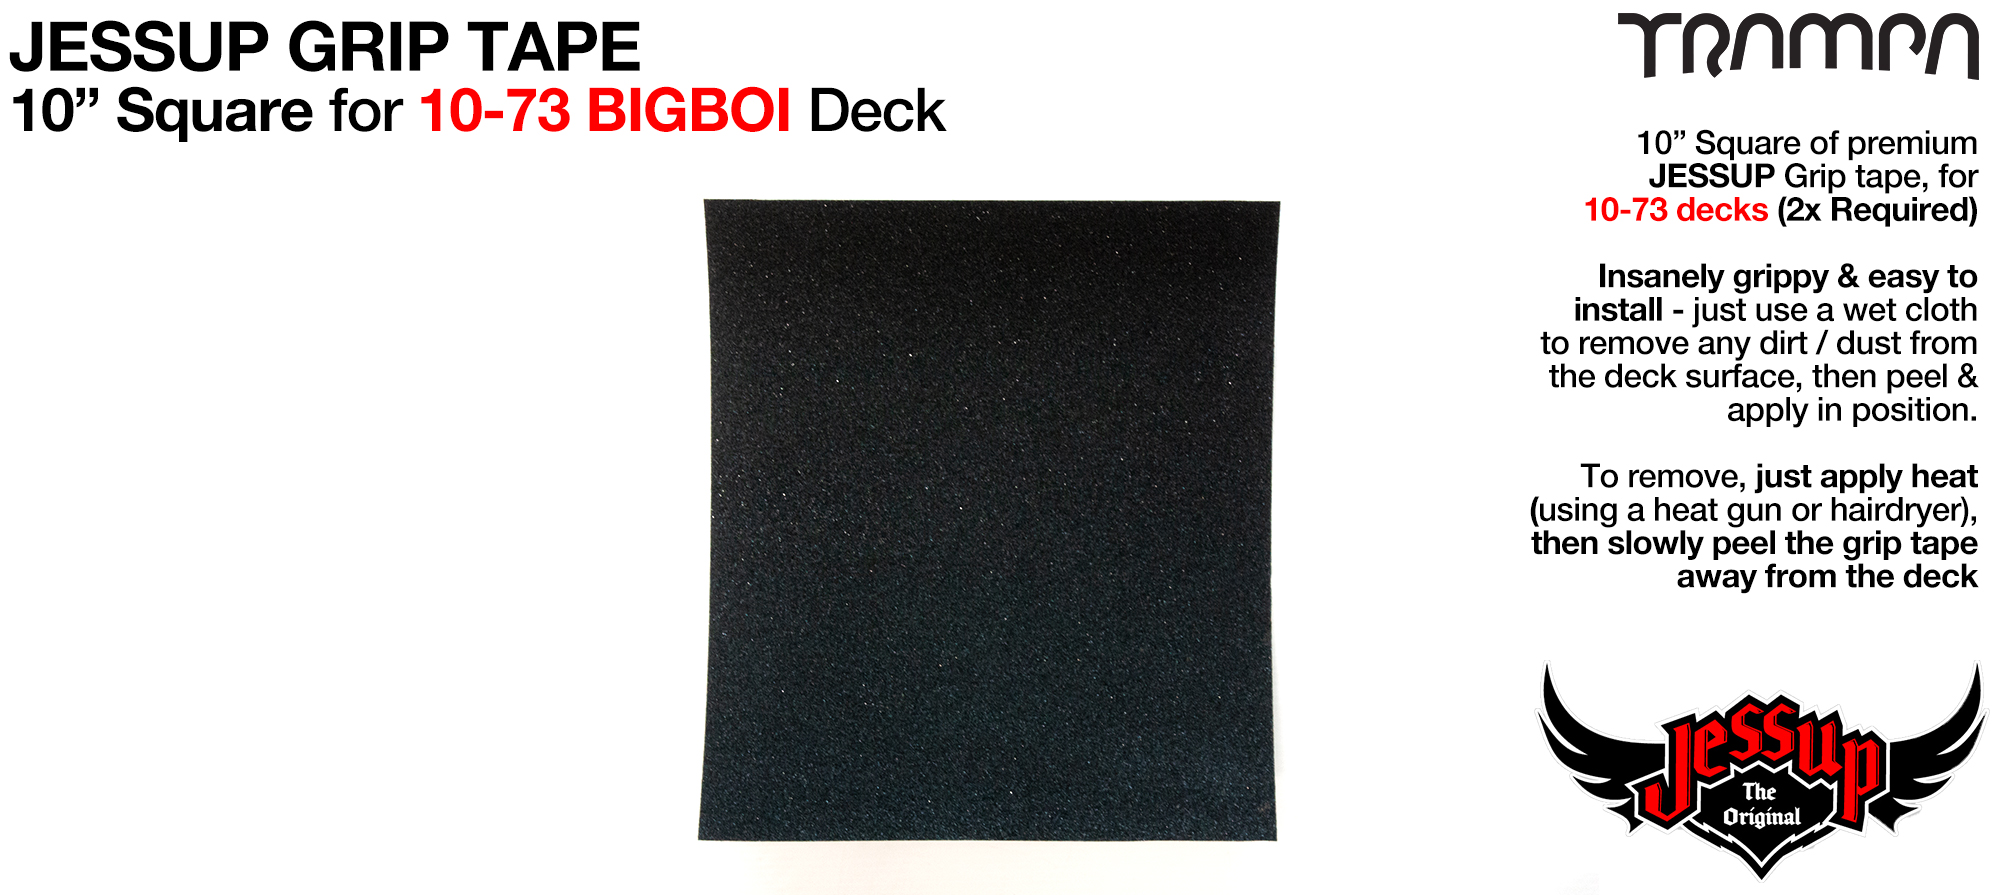 2 x 10 Inch squares of Top Quality Jessup Grip tape